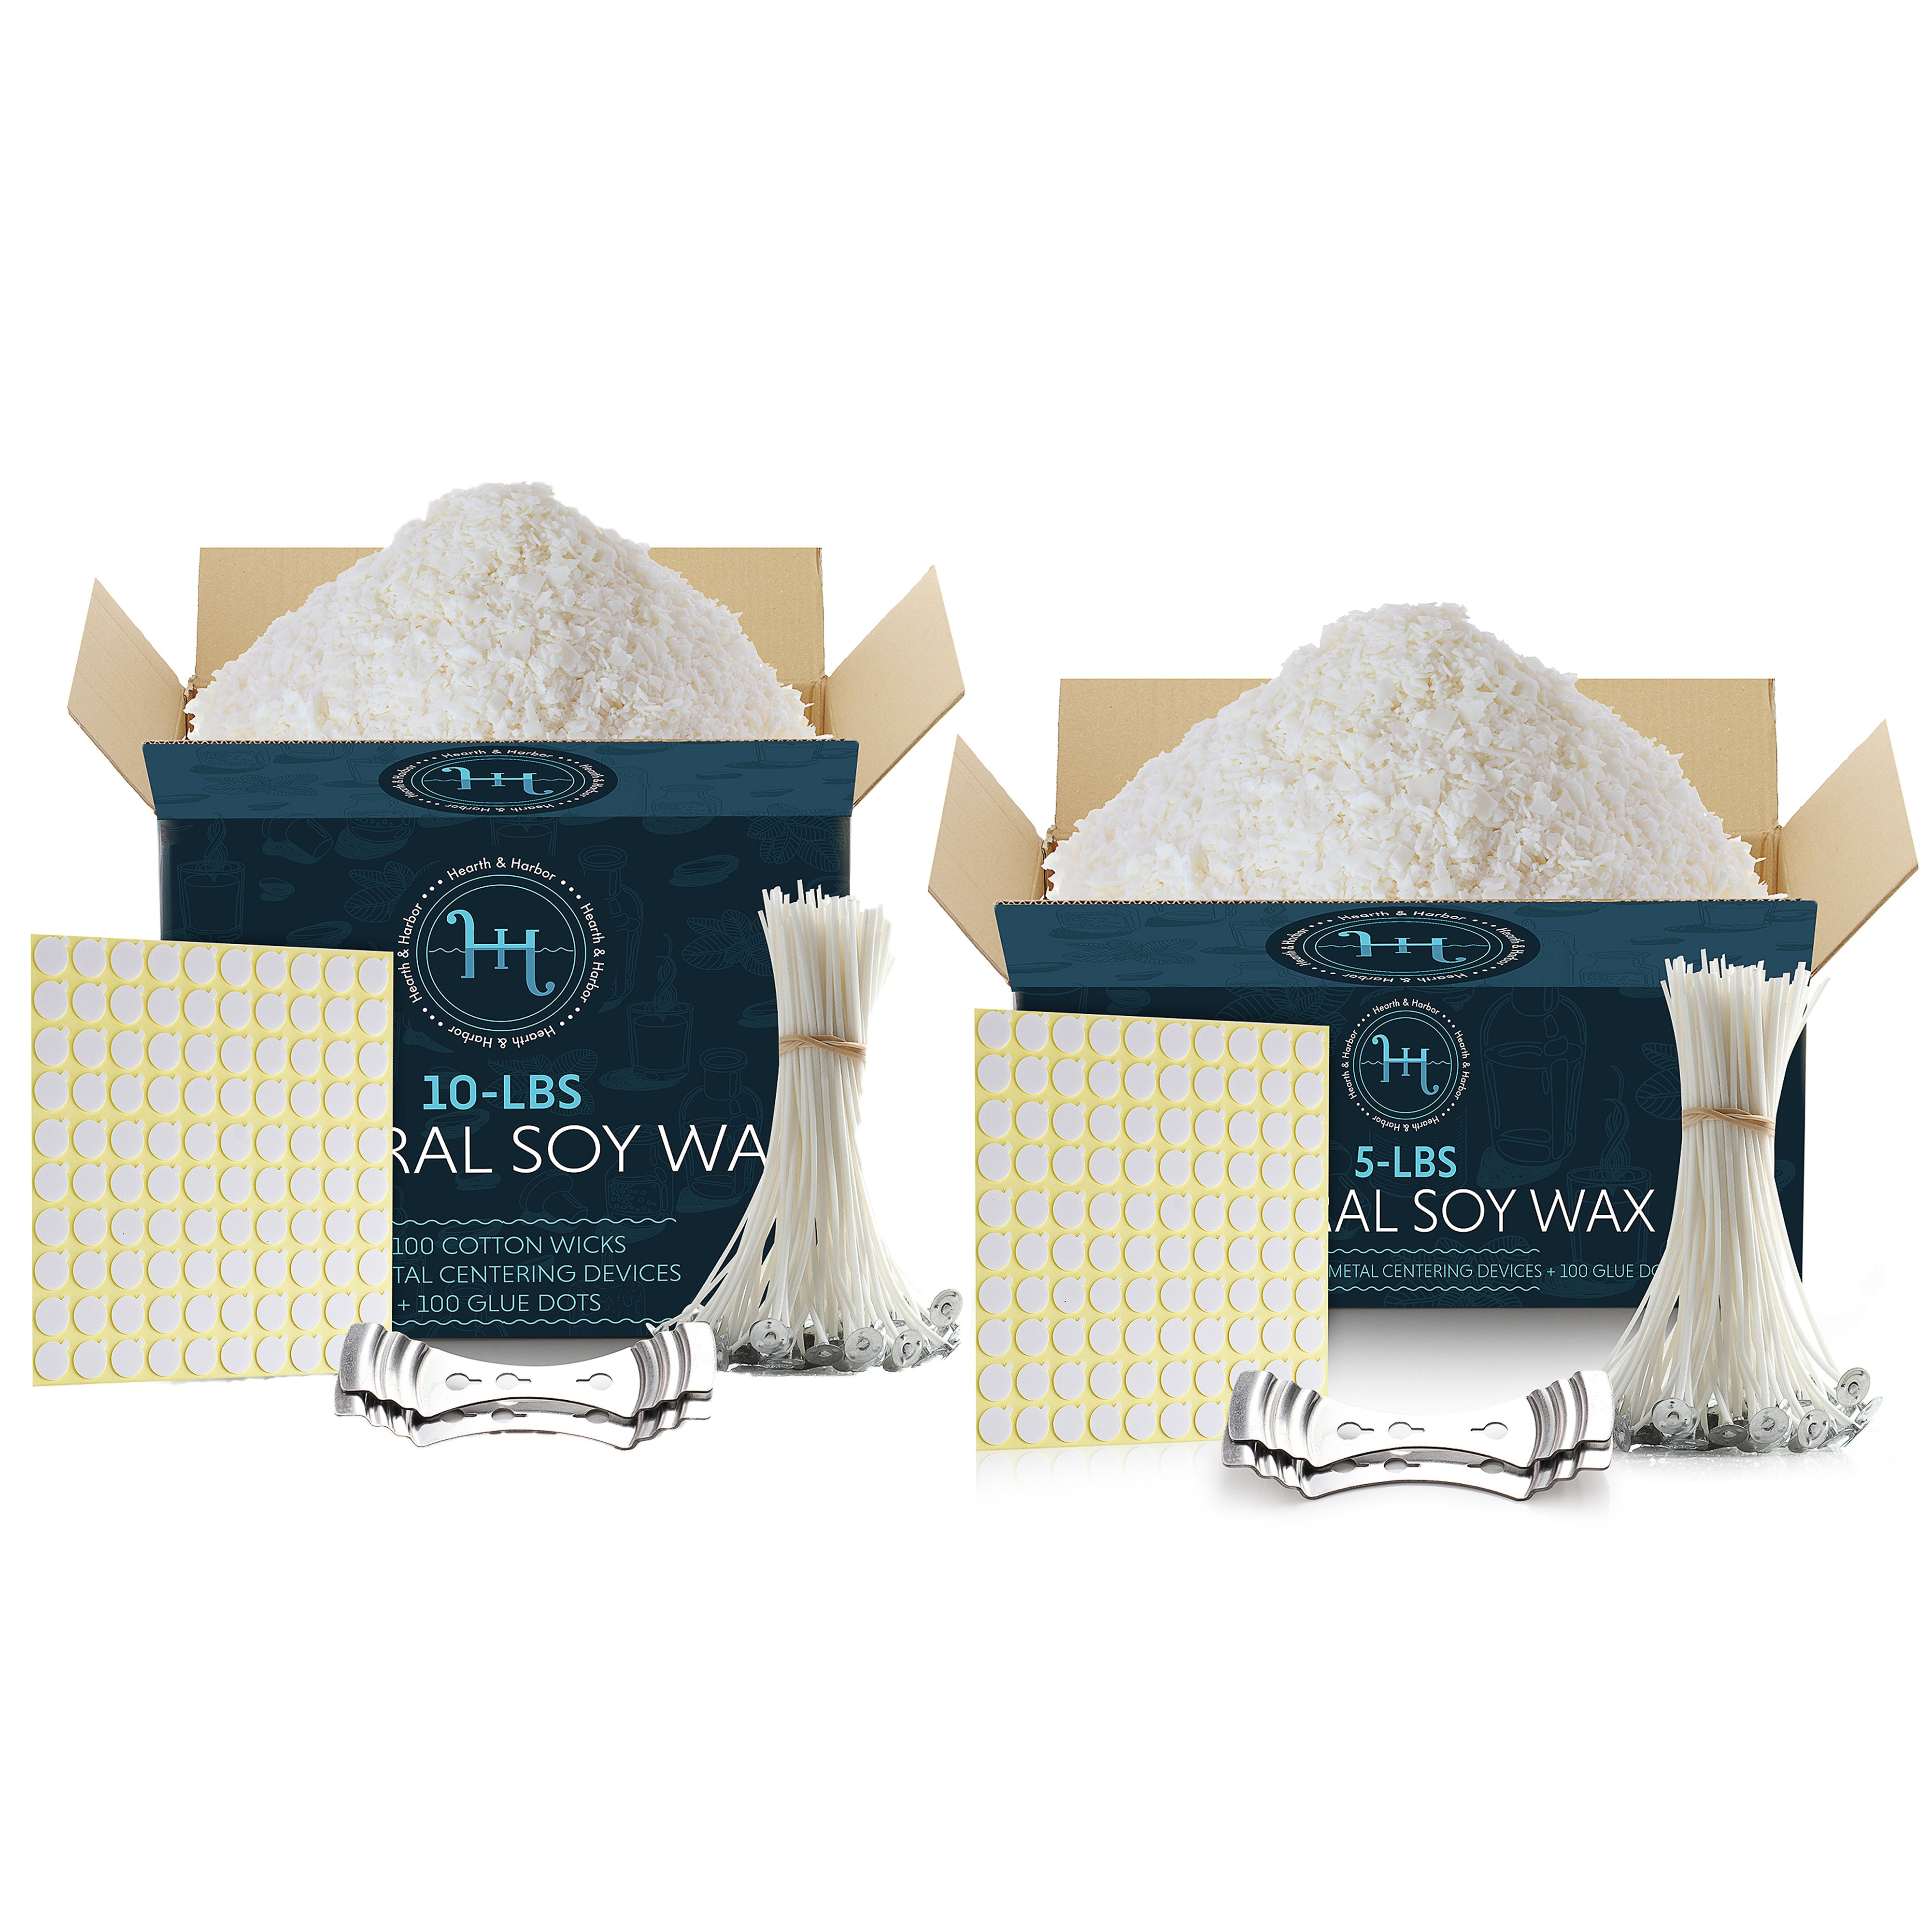 Hearth & Harbor Natural Soy Wax Kit for Candle Making – 5 & 10-Lbs Soy Candle Wax Flakes w/ 100 Cotton Wicks, 2 Metal Centering Devices & 100 Glue Dots – Candle Making Supplies for DIY Scented Candles